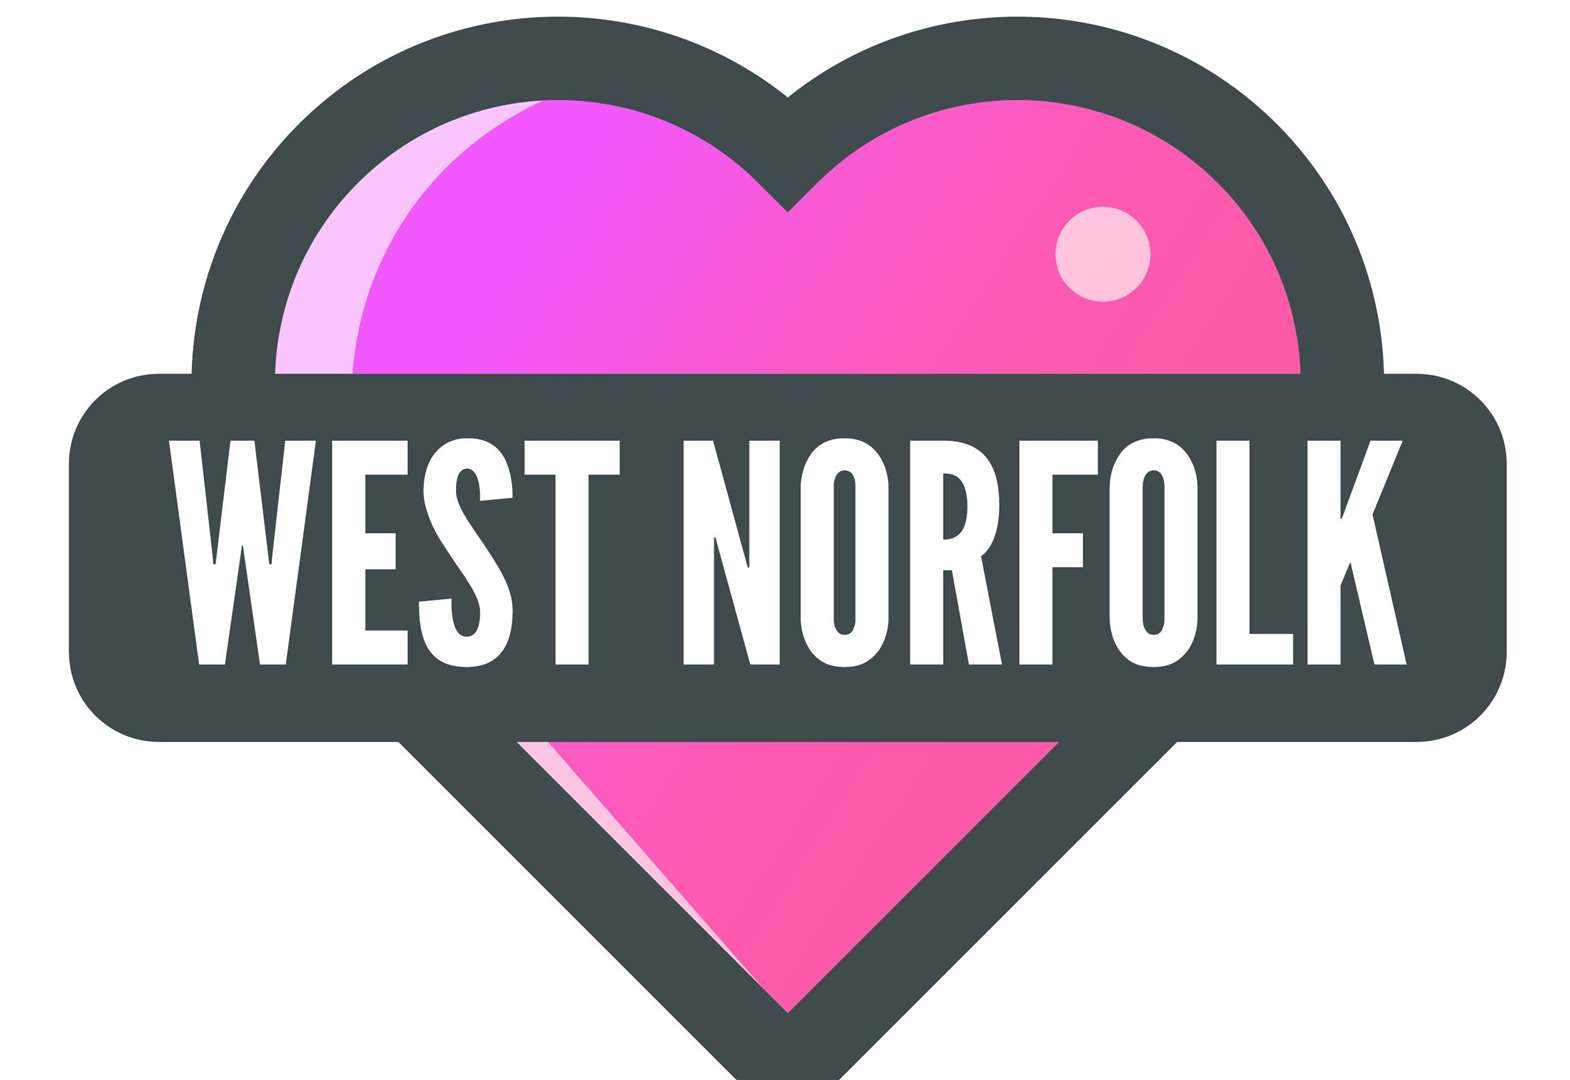 Love West Norfolk Day: Today's a special day, so let's use it